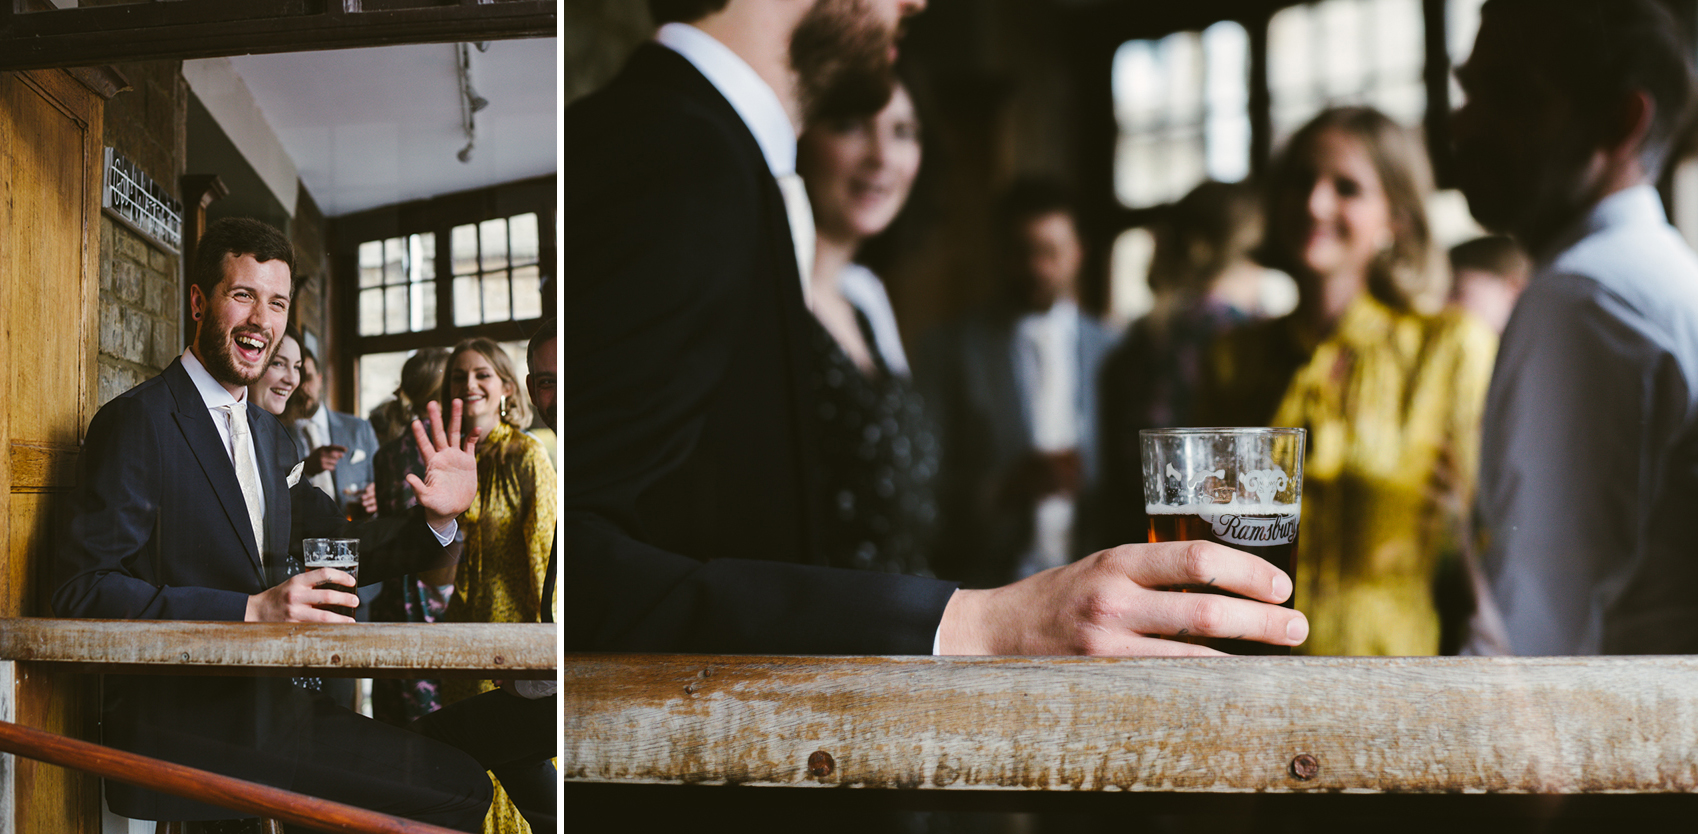 1_Lisa & Christy Malmesbury Wiltshire Documentary Wedding Photographer-95.jpg